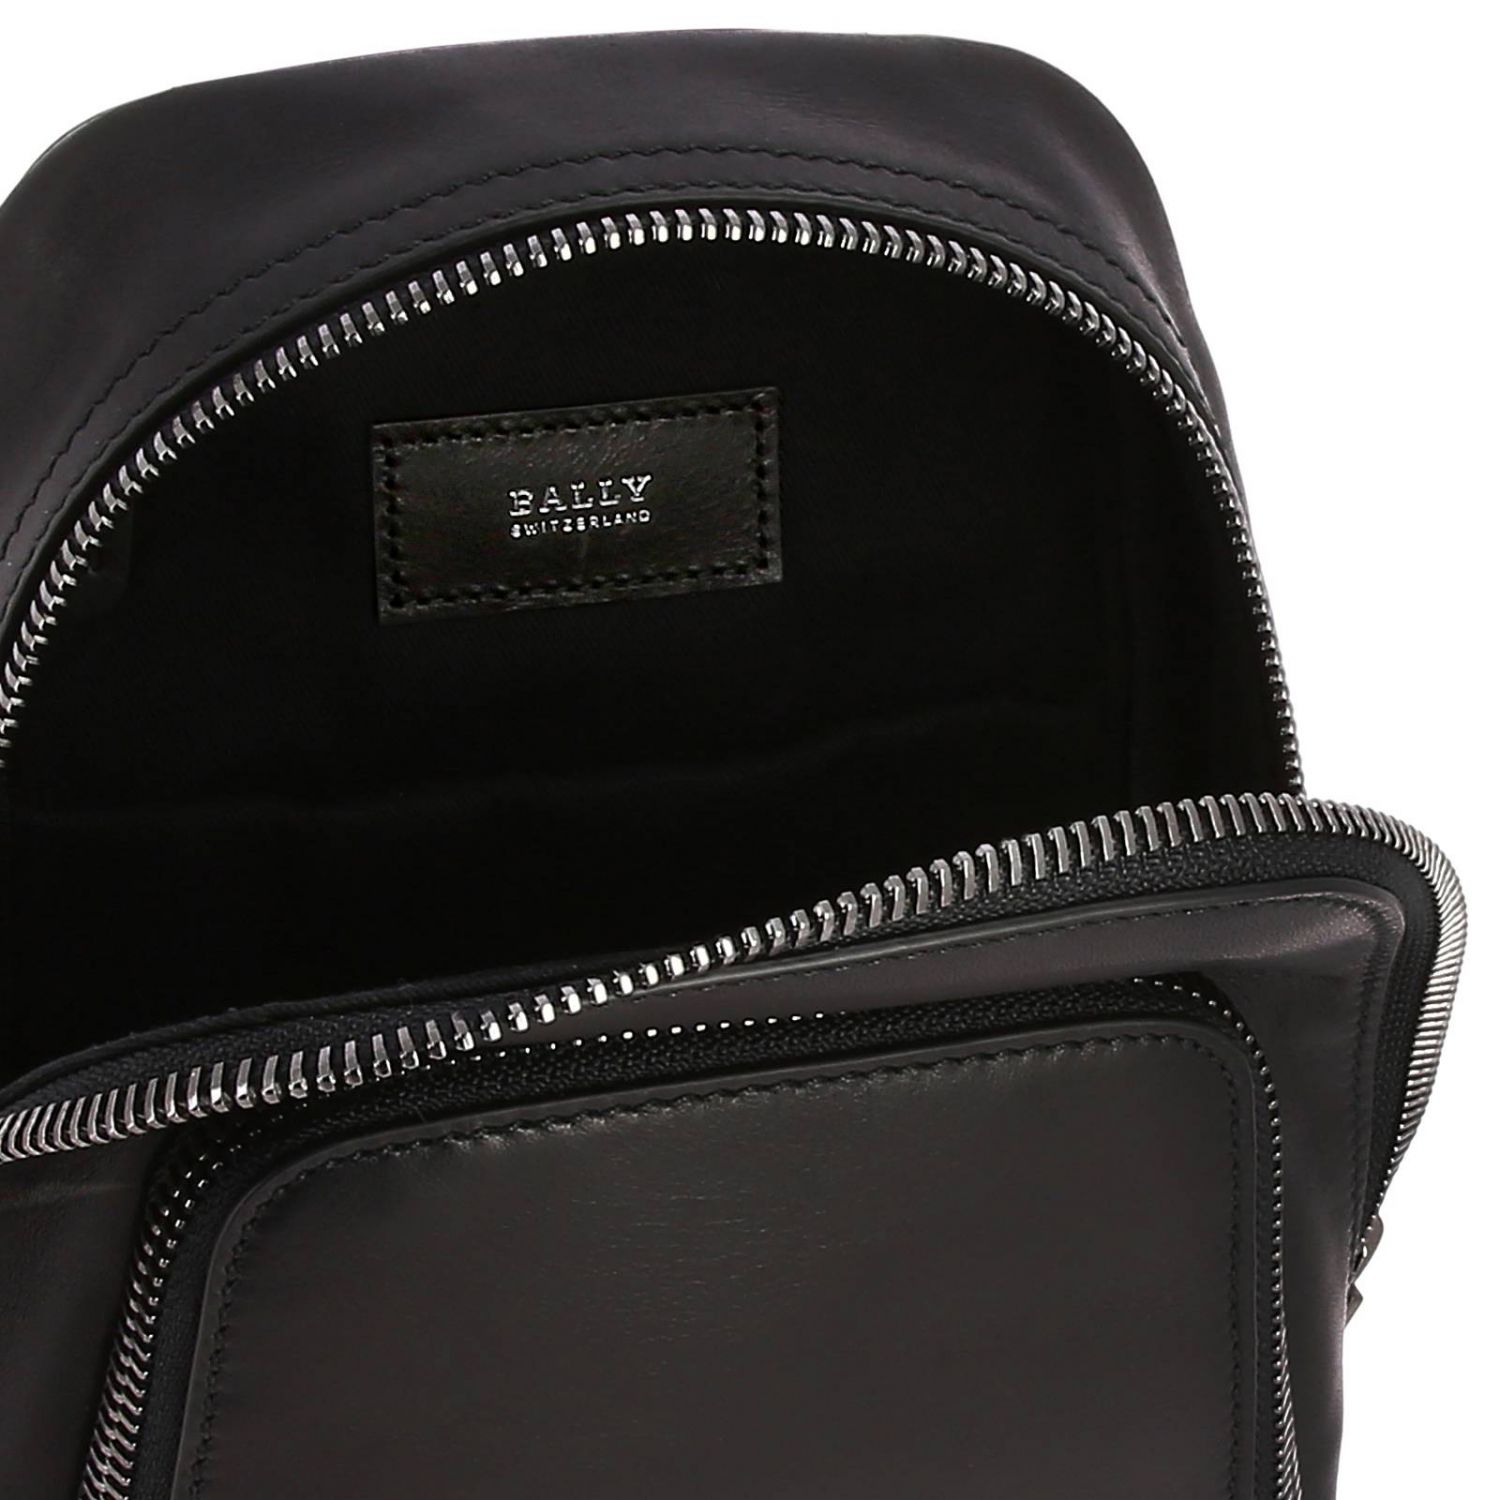 Thorp Bally one shoulder leather backpack with full zip black 6